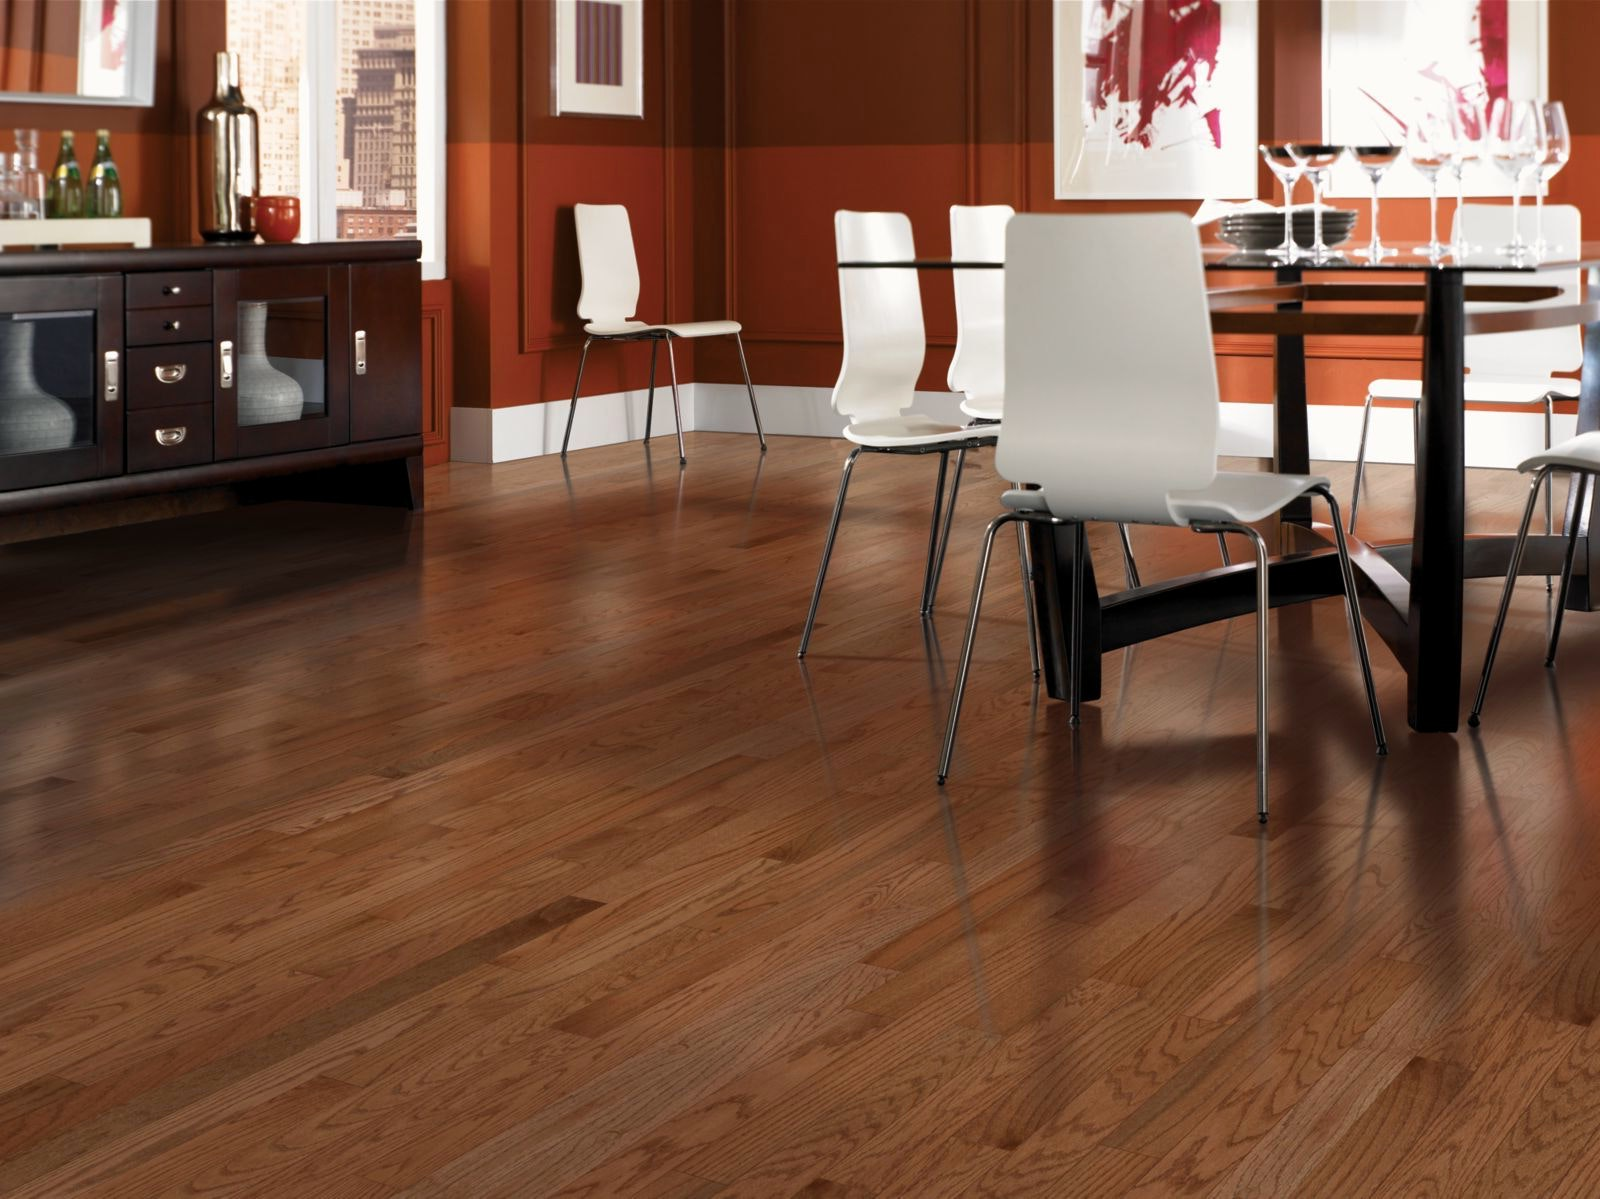 Mohawk engineered wood flooring reviews roy home design for Hardwood flooring reviews